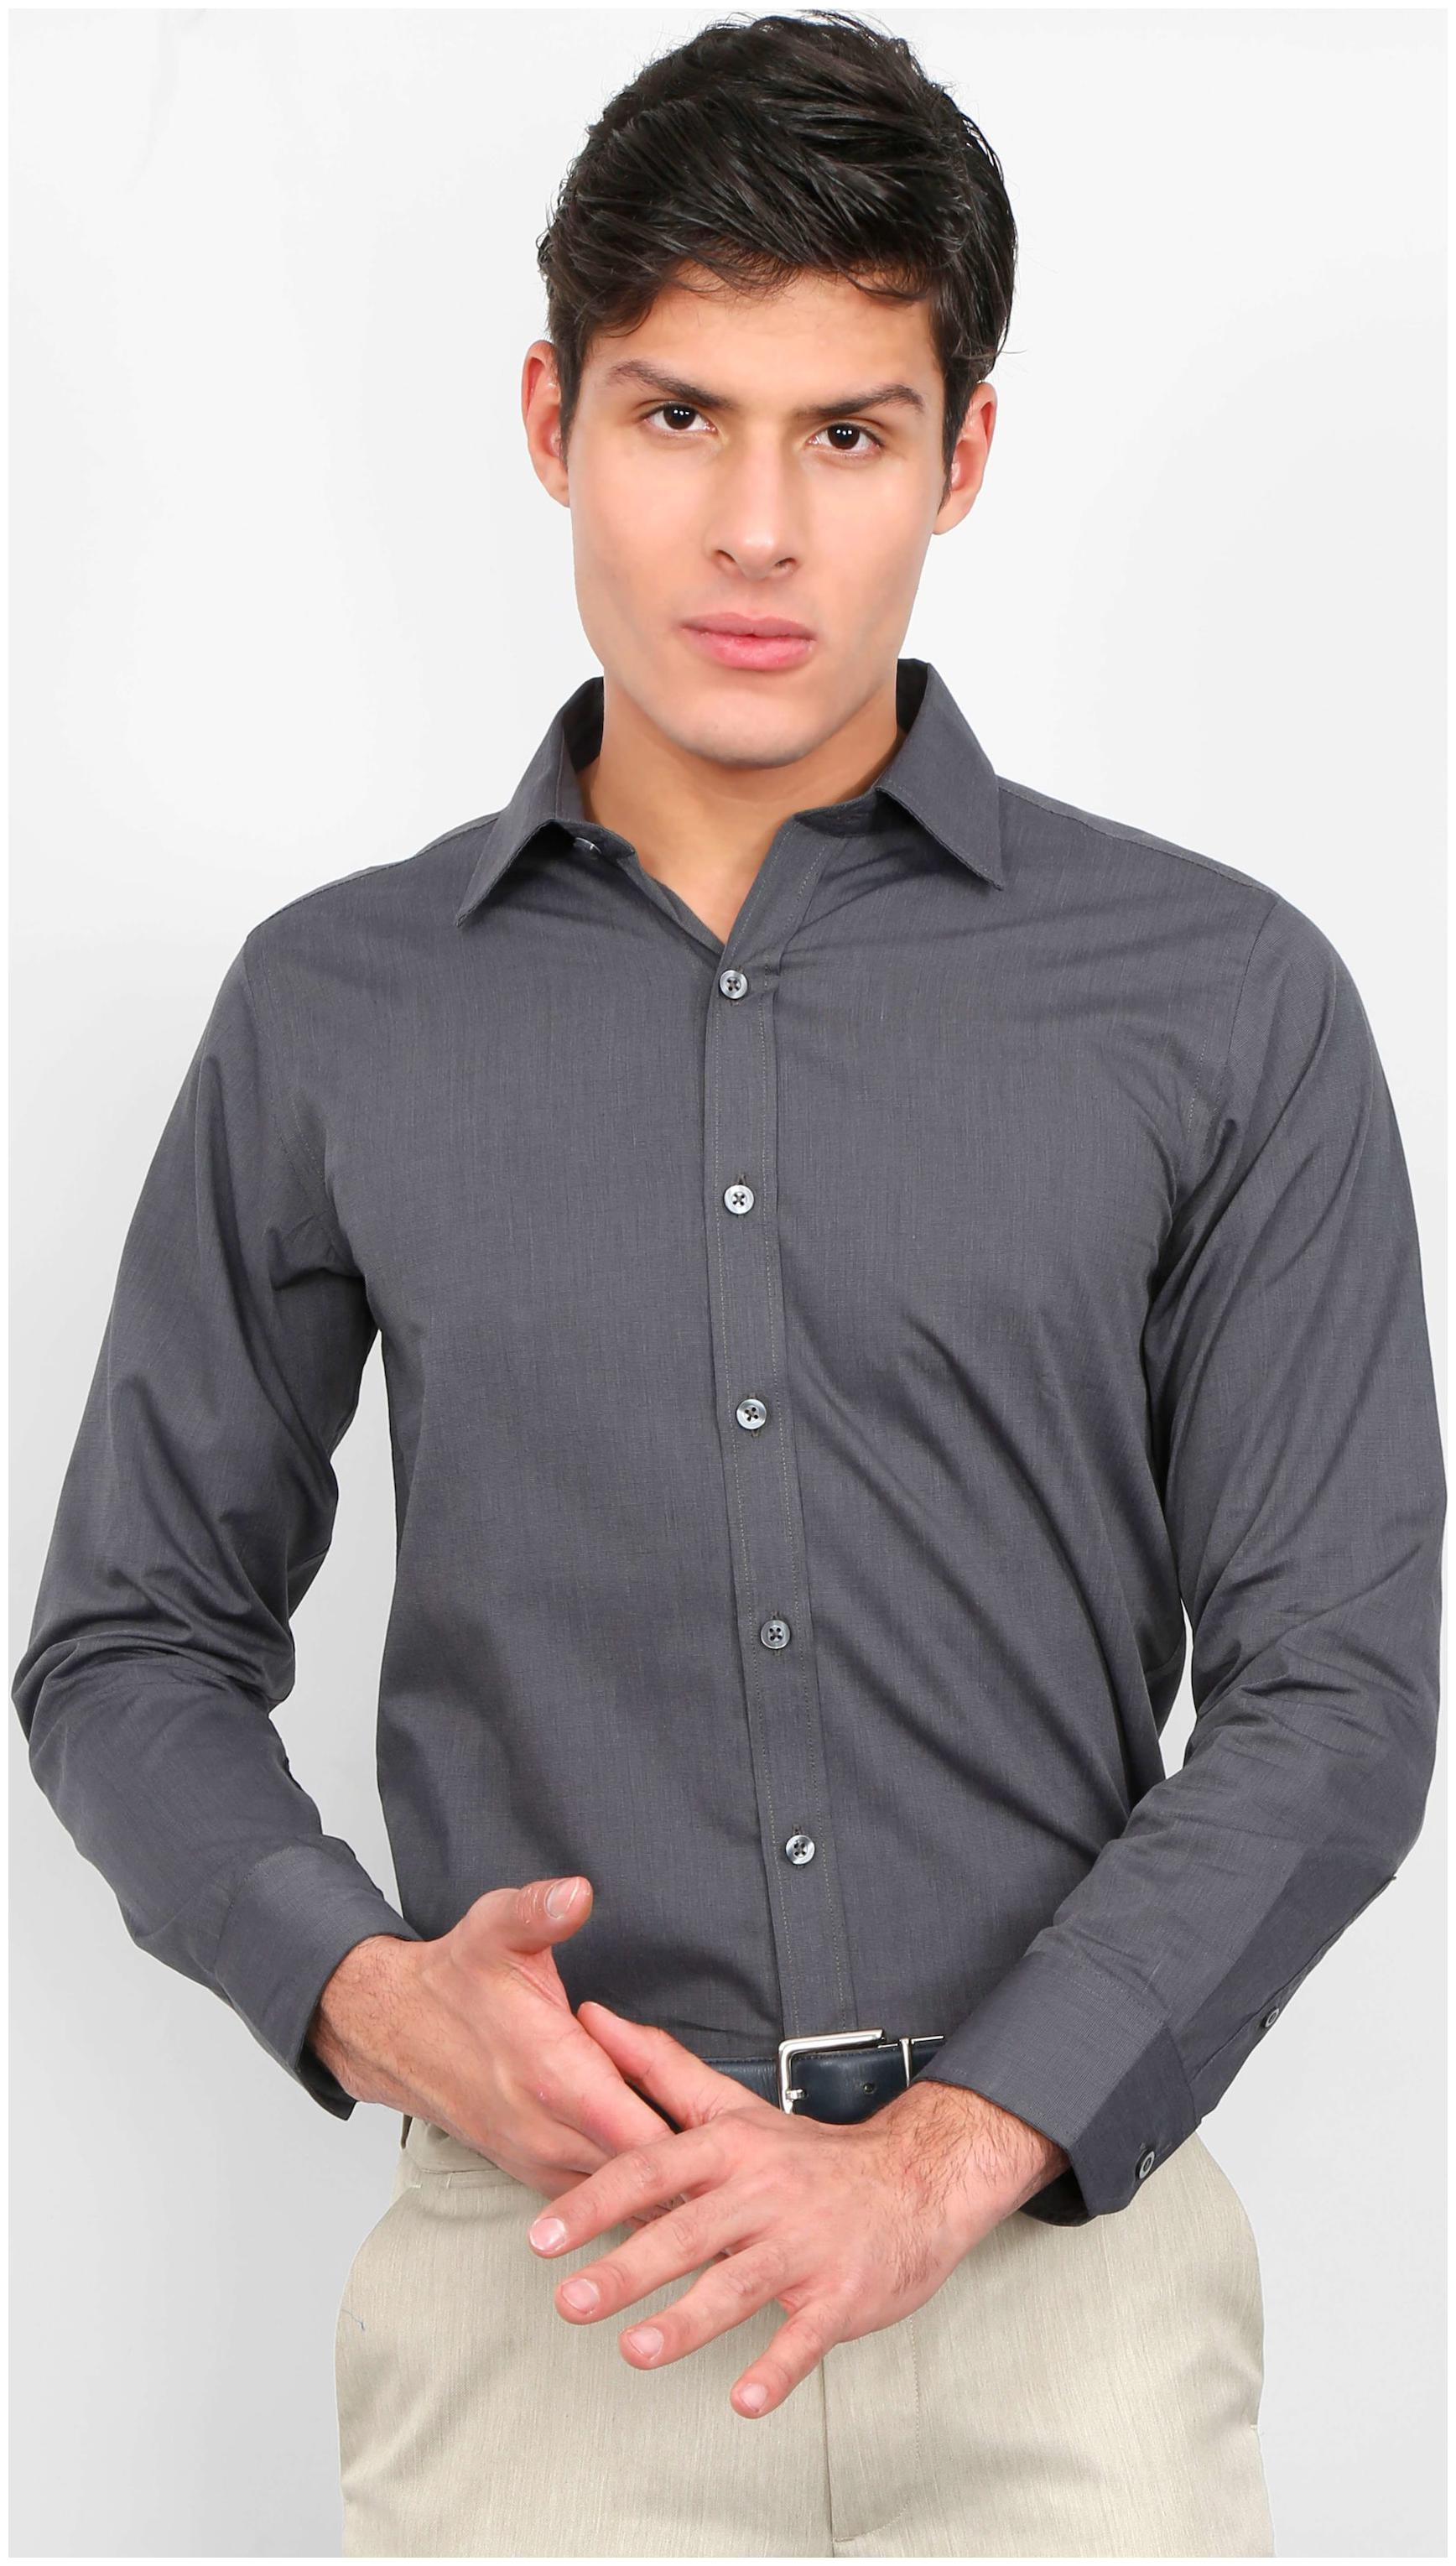 https://assetscdn1.paytm.com/images/catalog/product/A/AP/APPENSO-MEN-DARENSO960392D68C0AB7/1563054385039_8.jpg